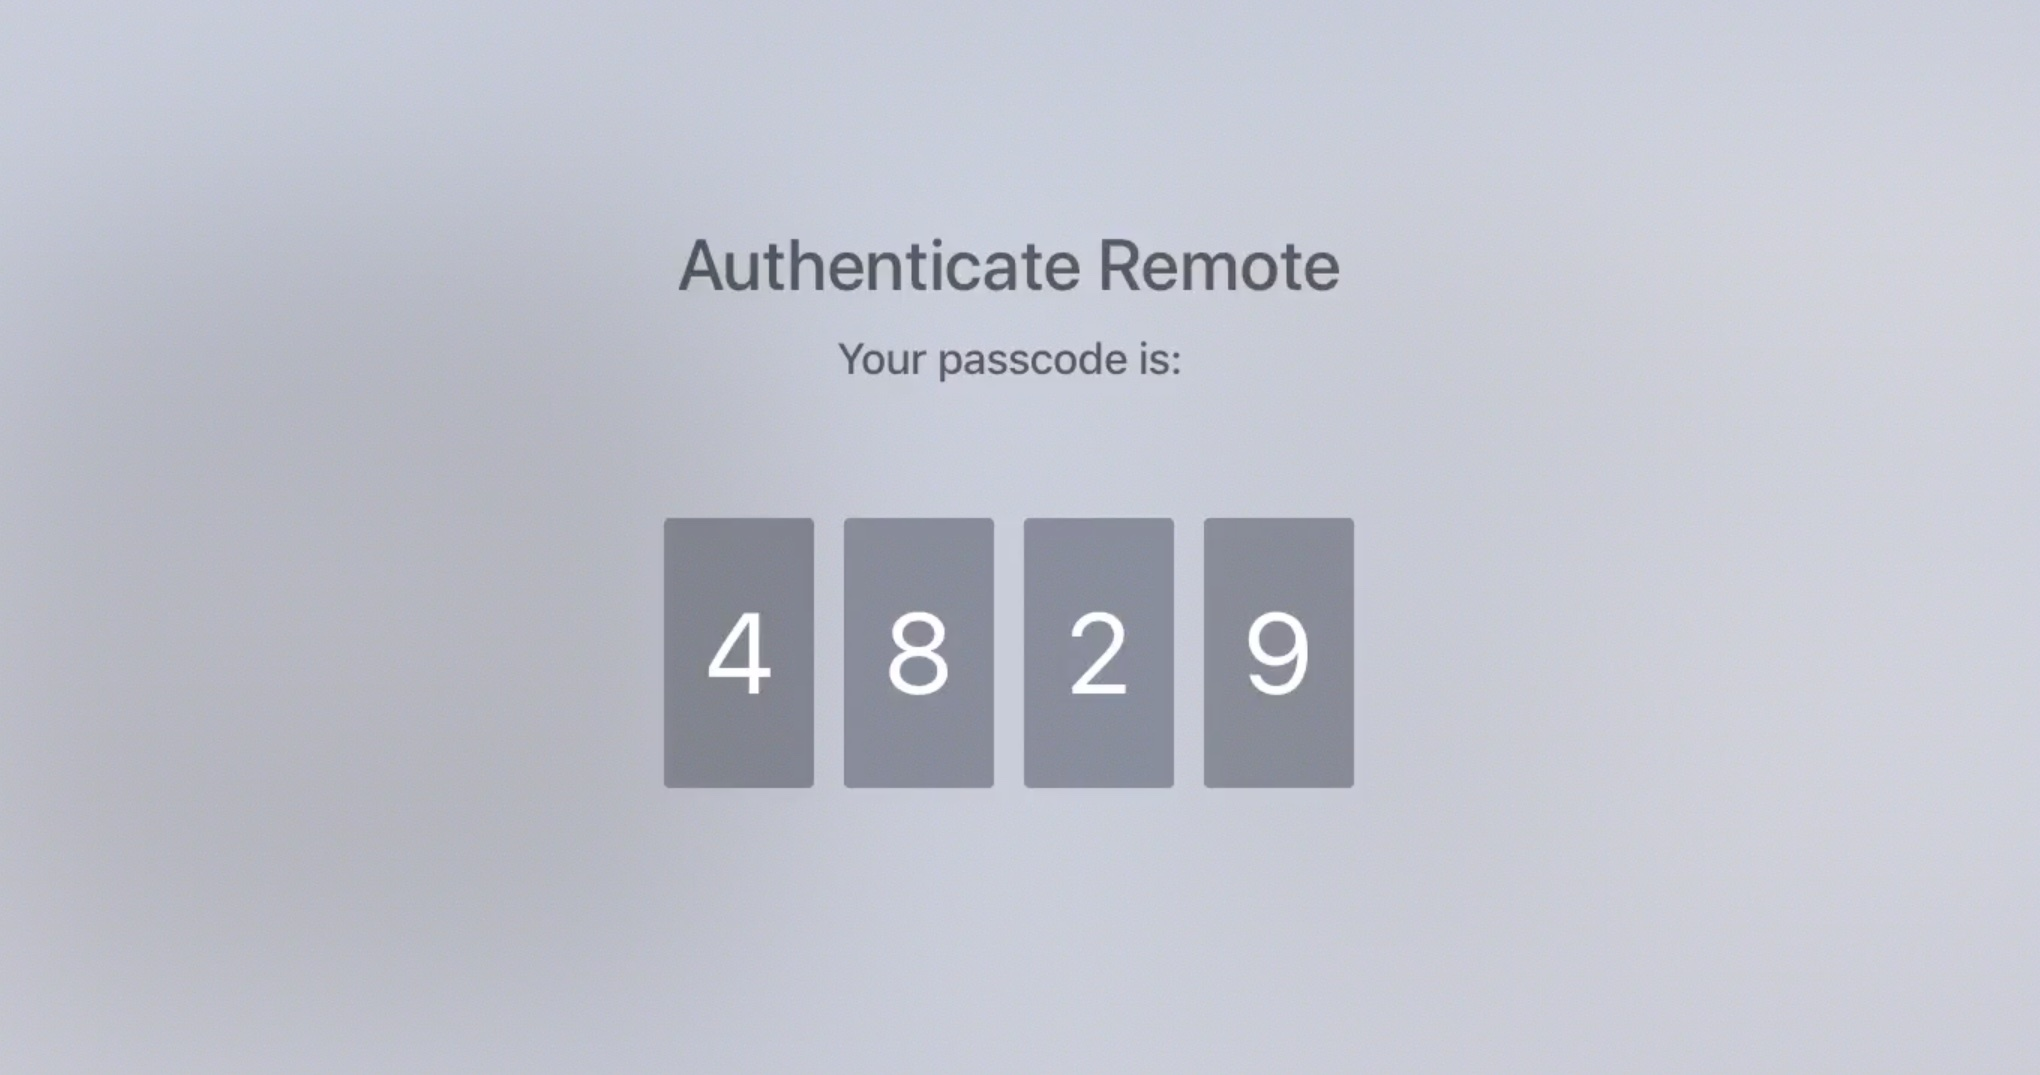 Authenticate Remote from Apple TV to Watch